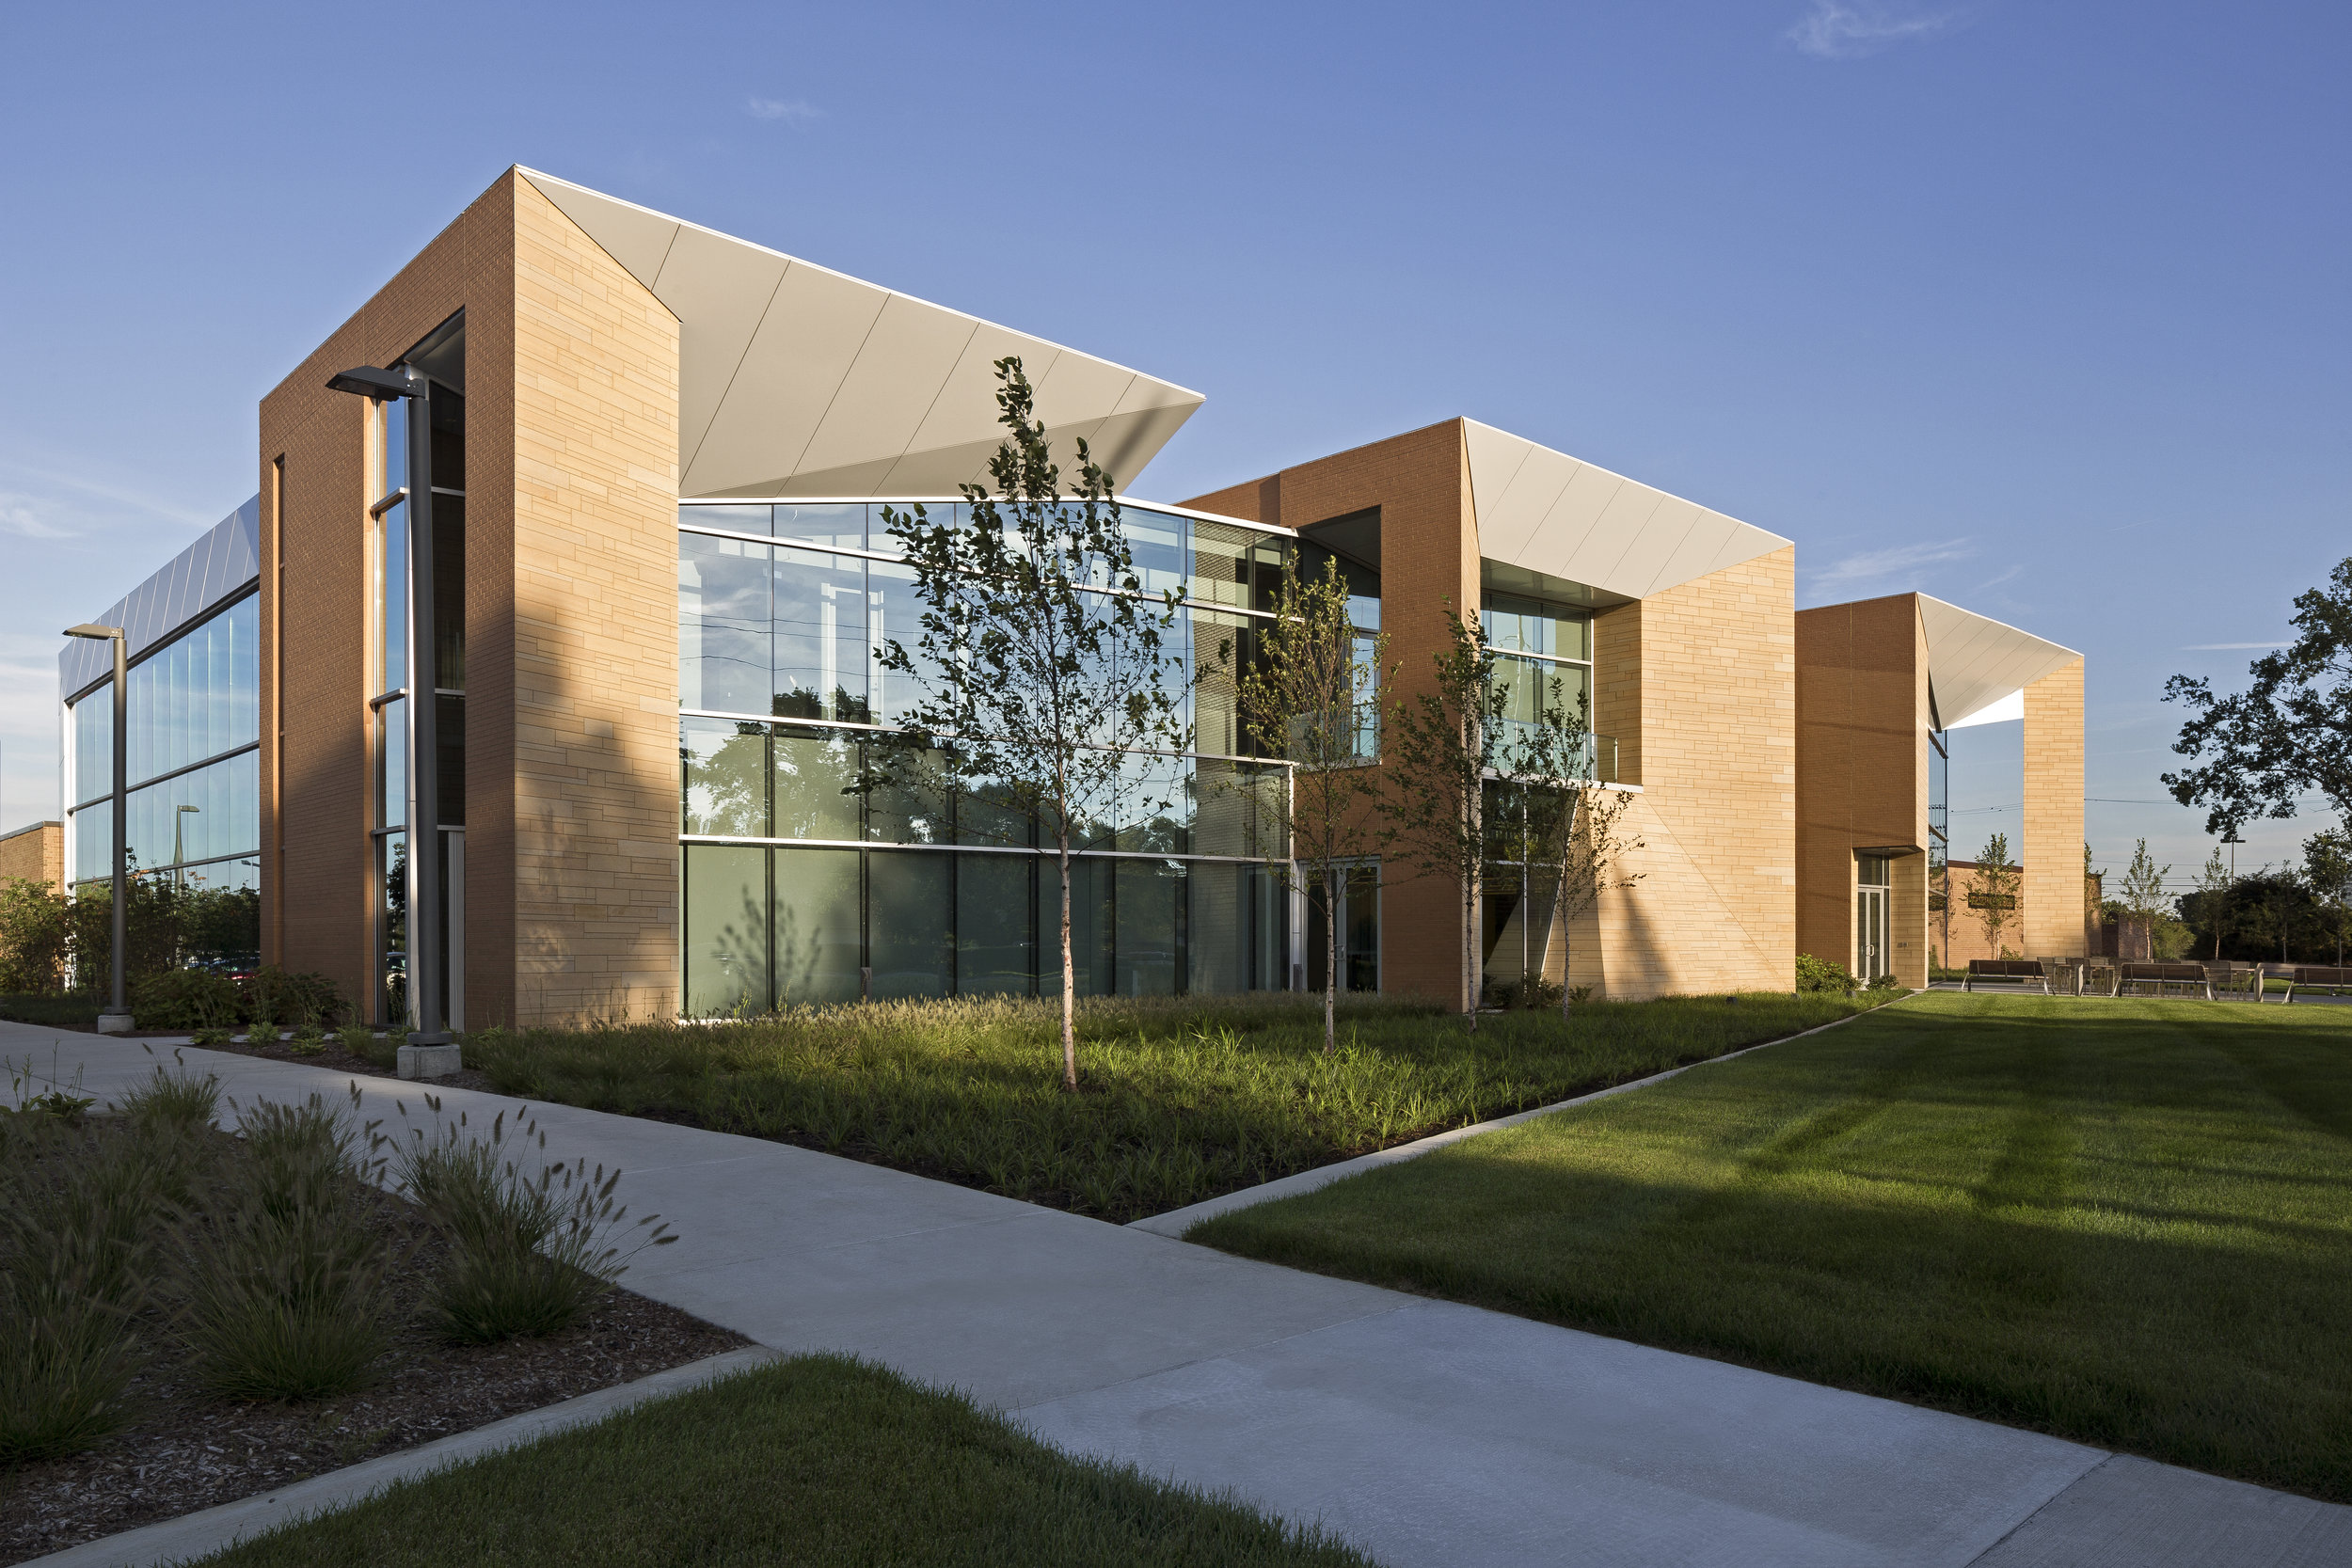 WalshCollege_JustinMaconochie_2208-E2-Large.jpg